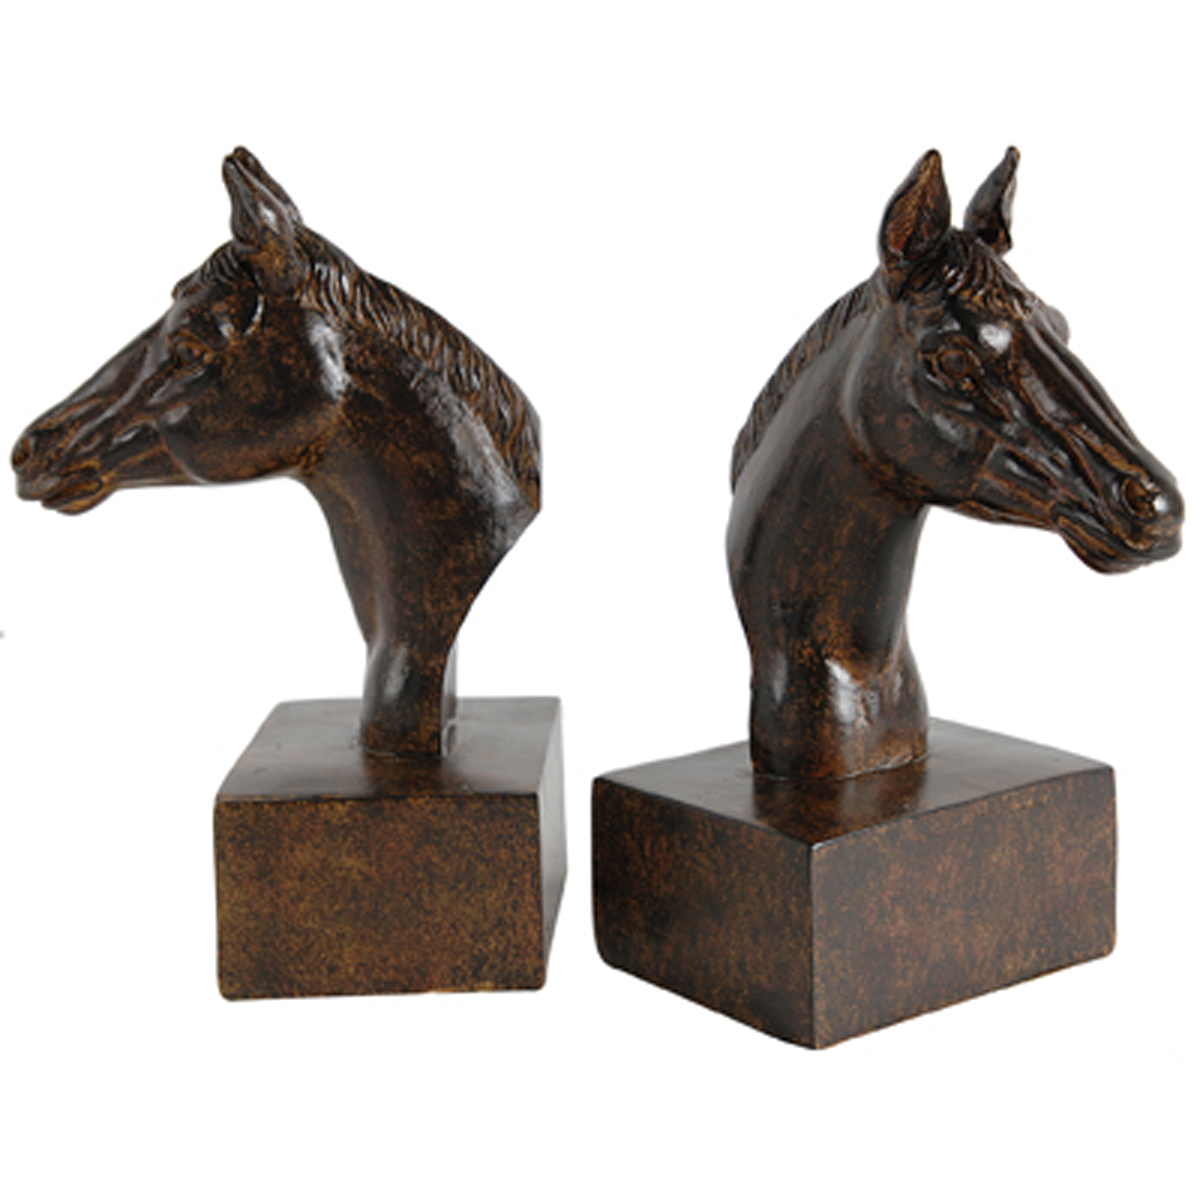 A&B Home Horse Bookends, Set of 2 by A&B Home